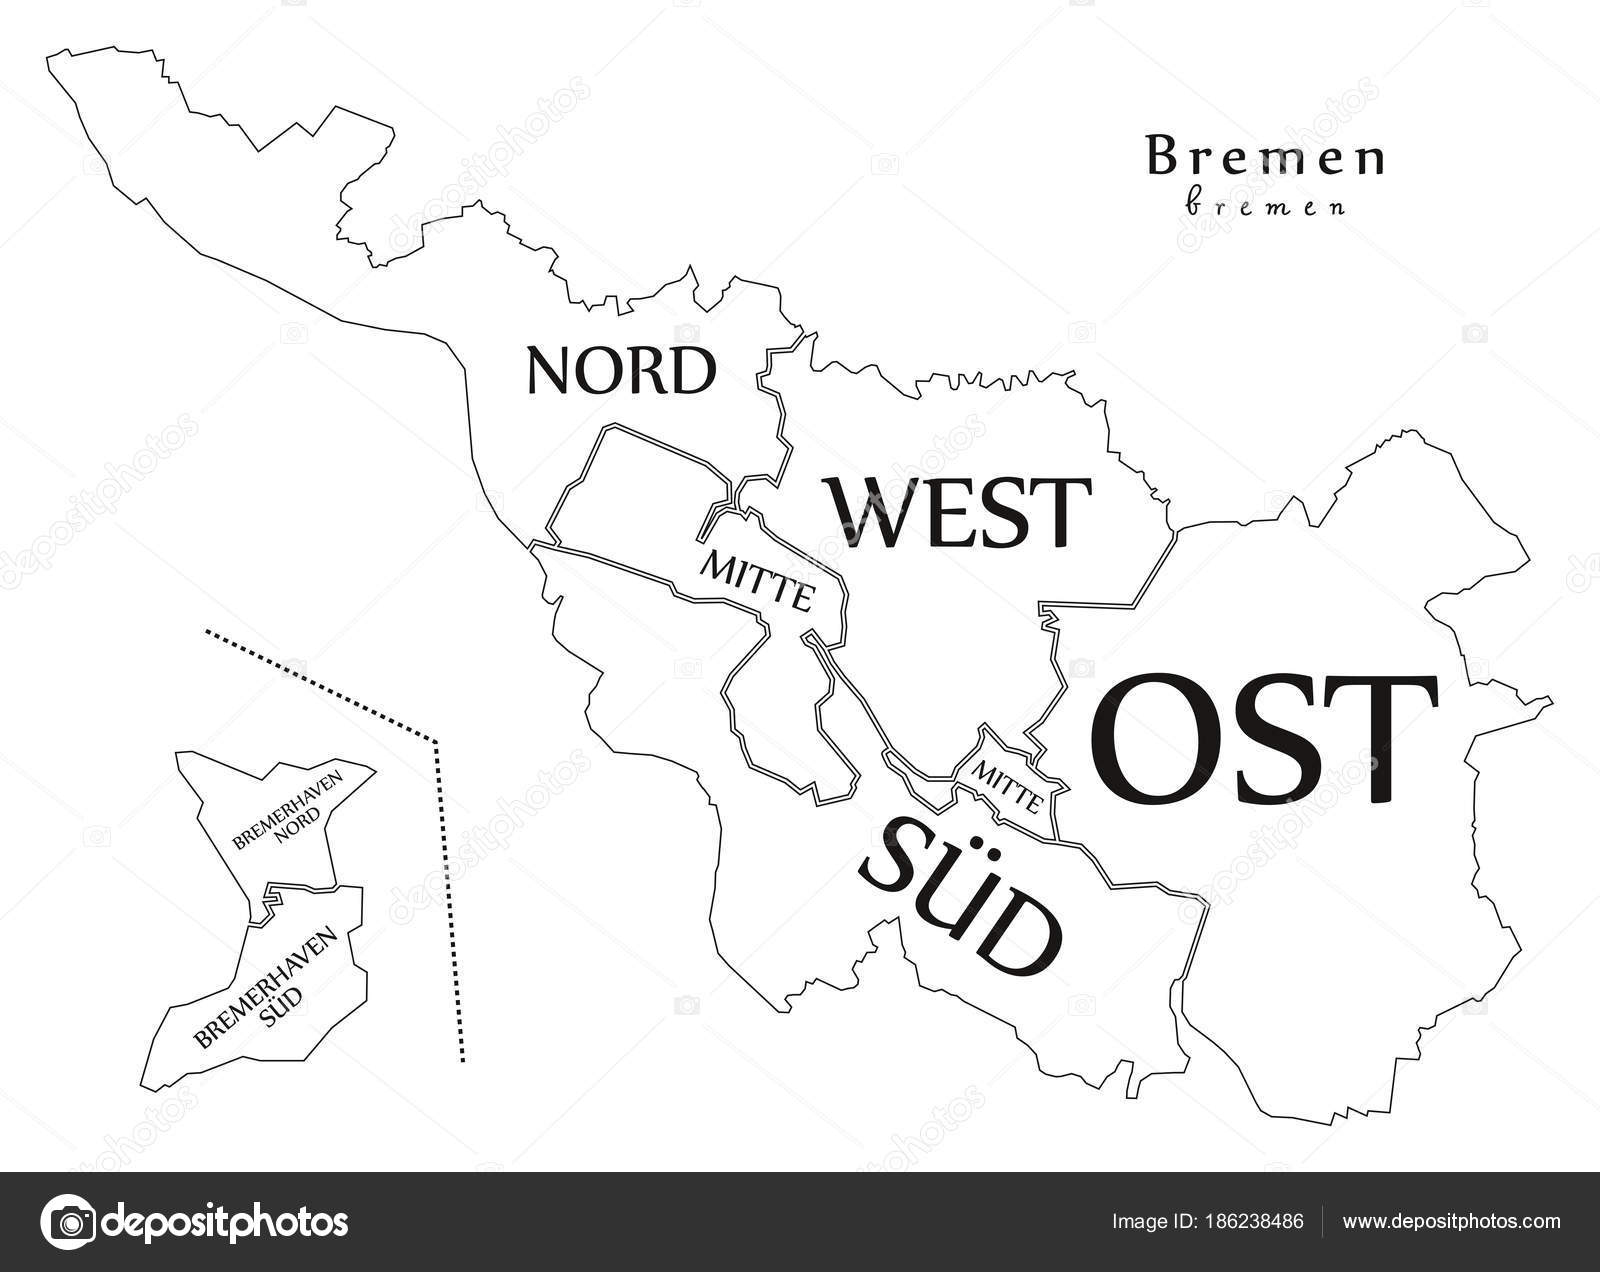 Modern City Map - Bremen city of Germany with boroughs and title ...